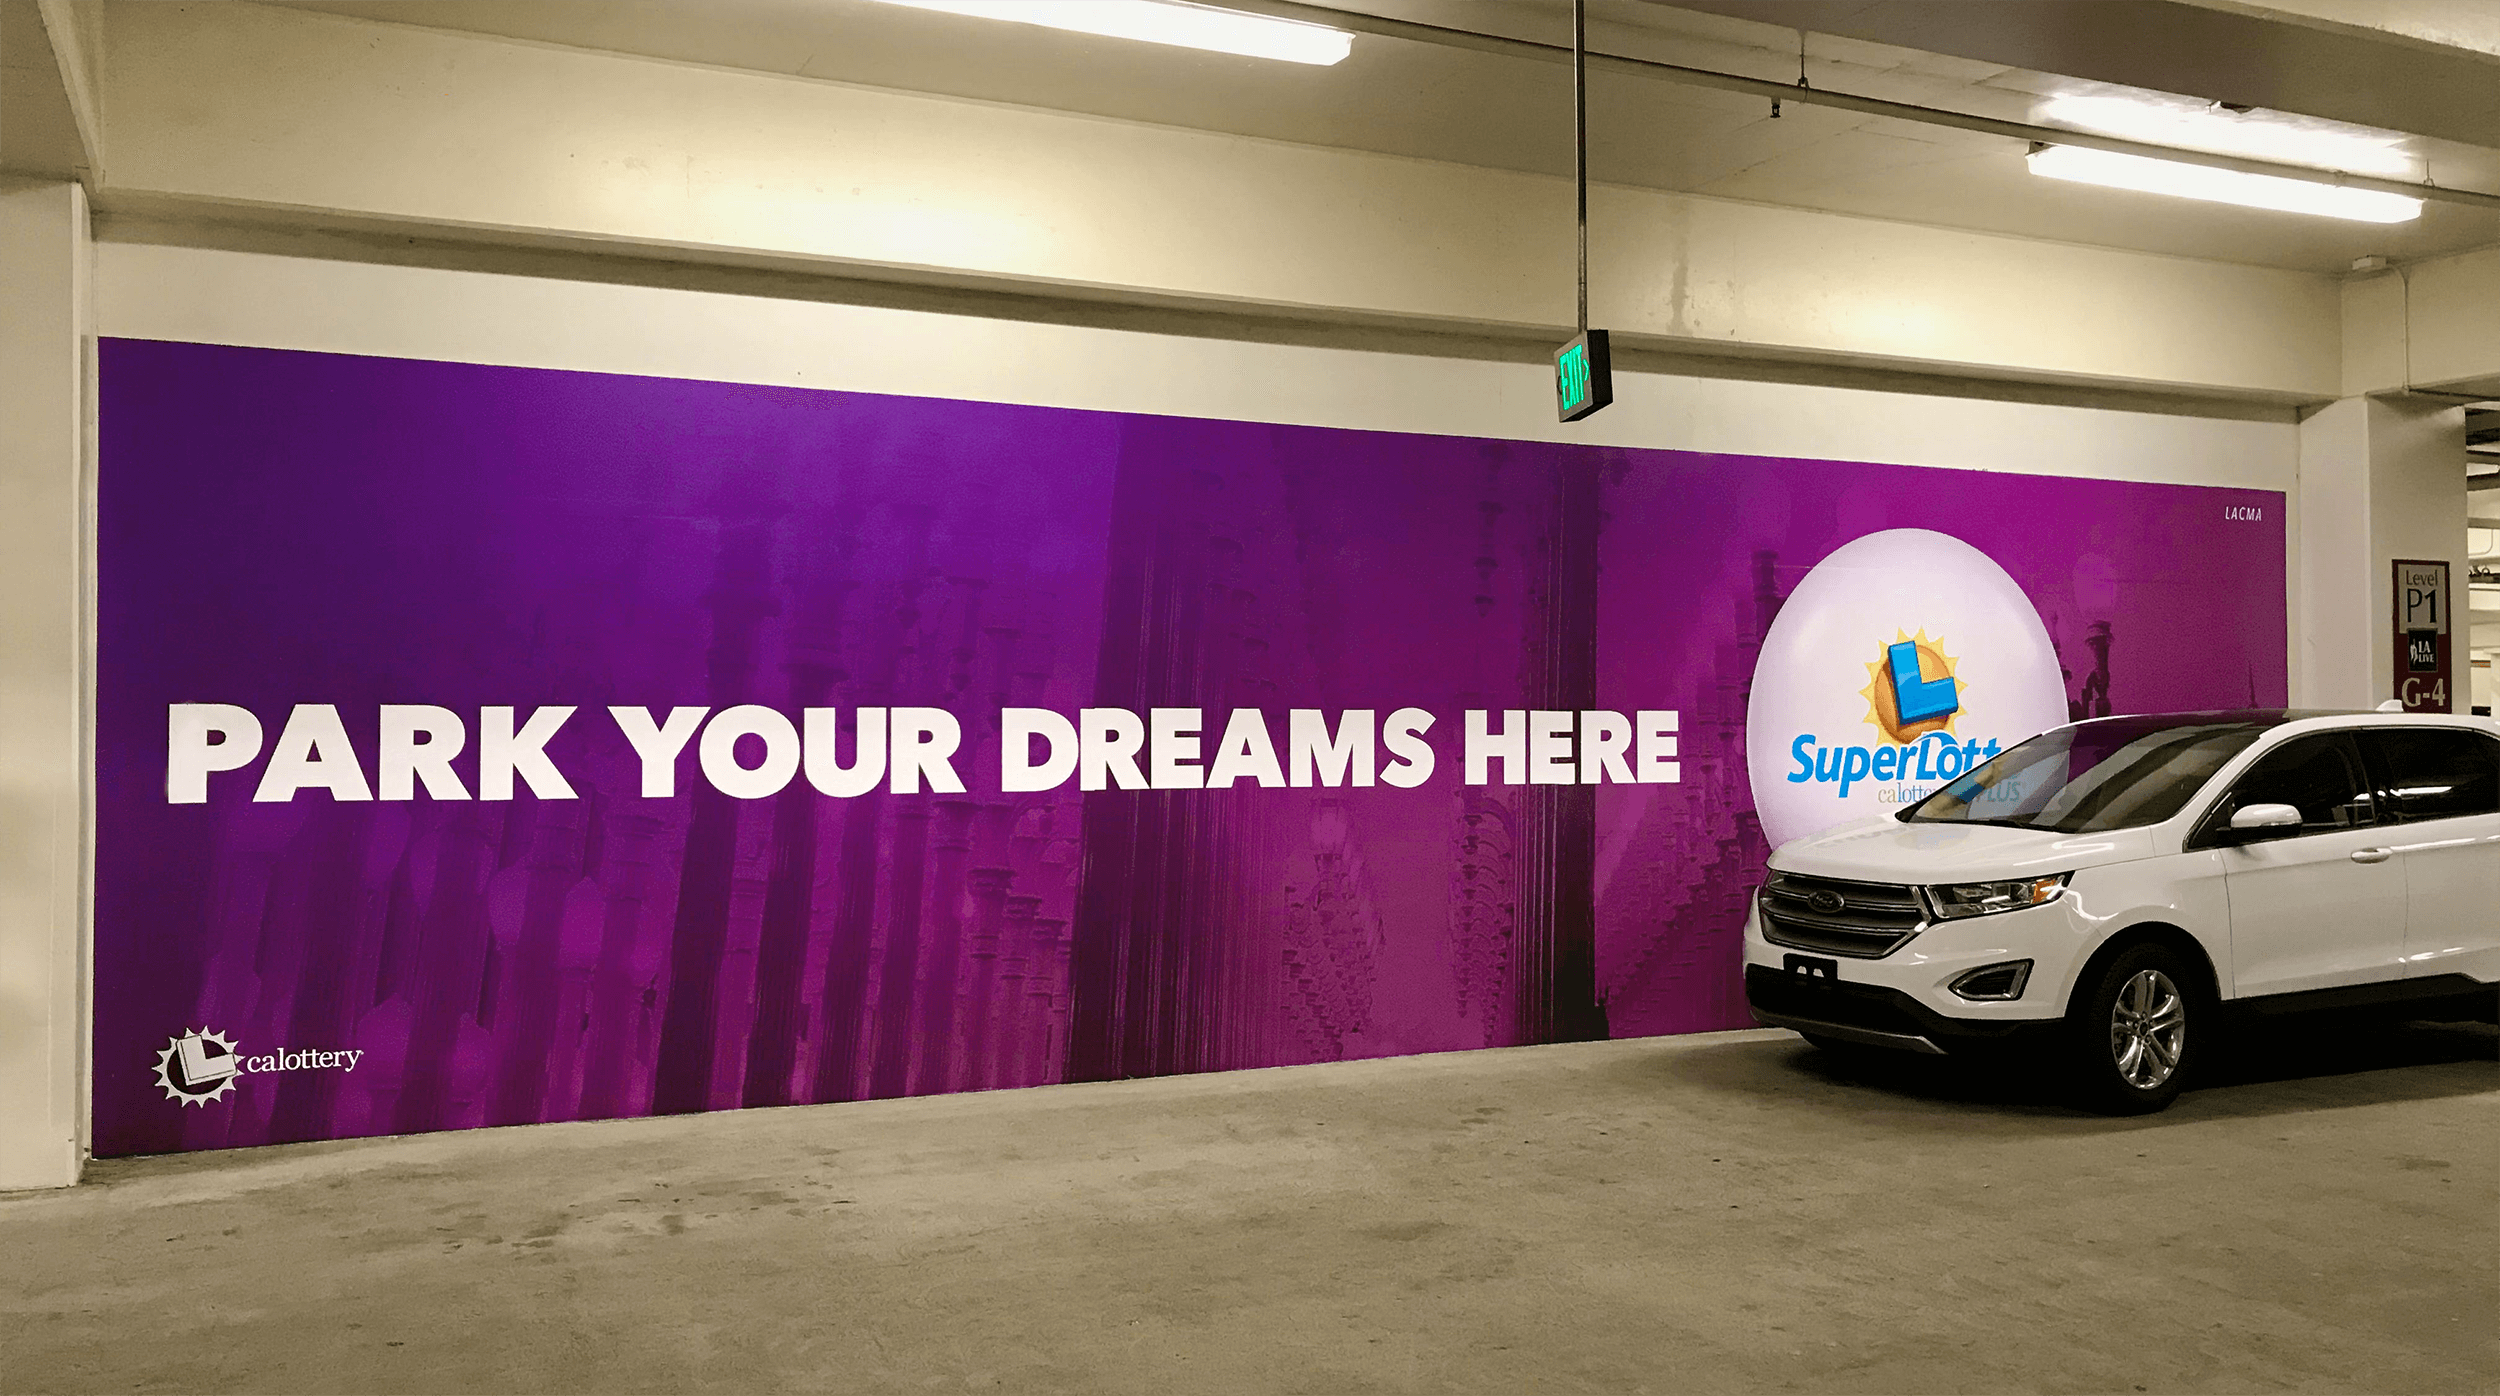 From the parking garage to the Staples Center, every step along the way reminded players how easy it can be to dream big in California.